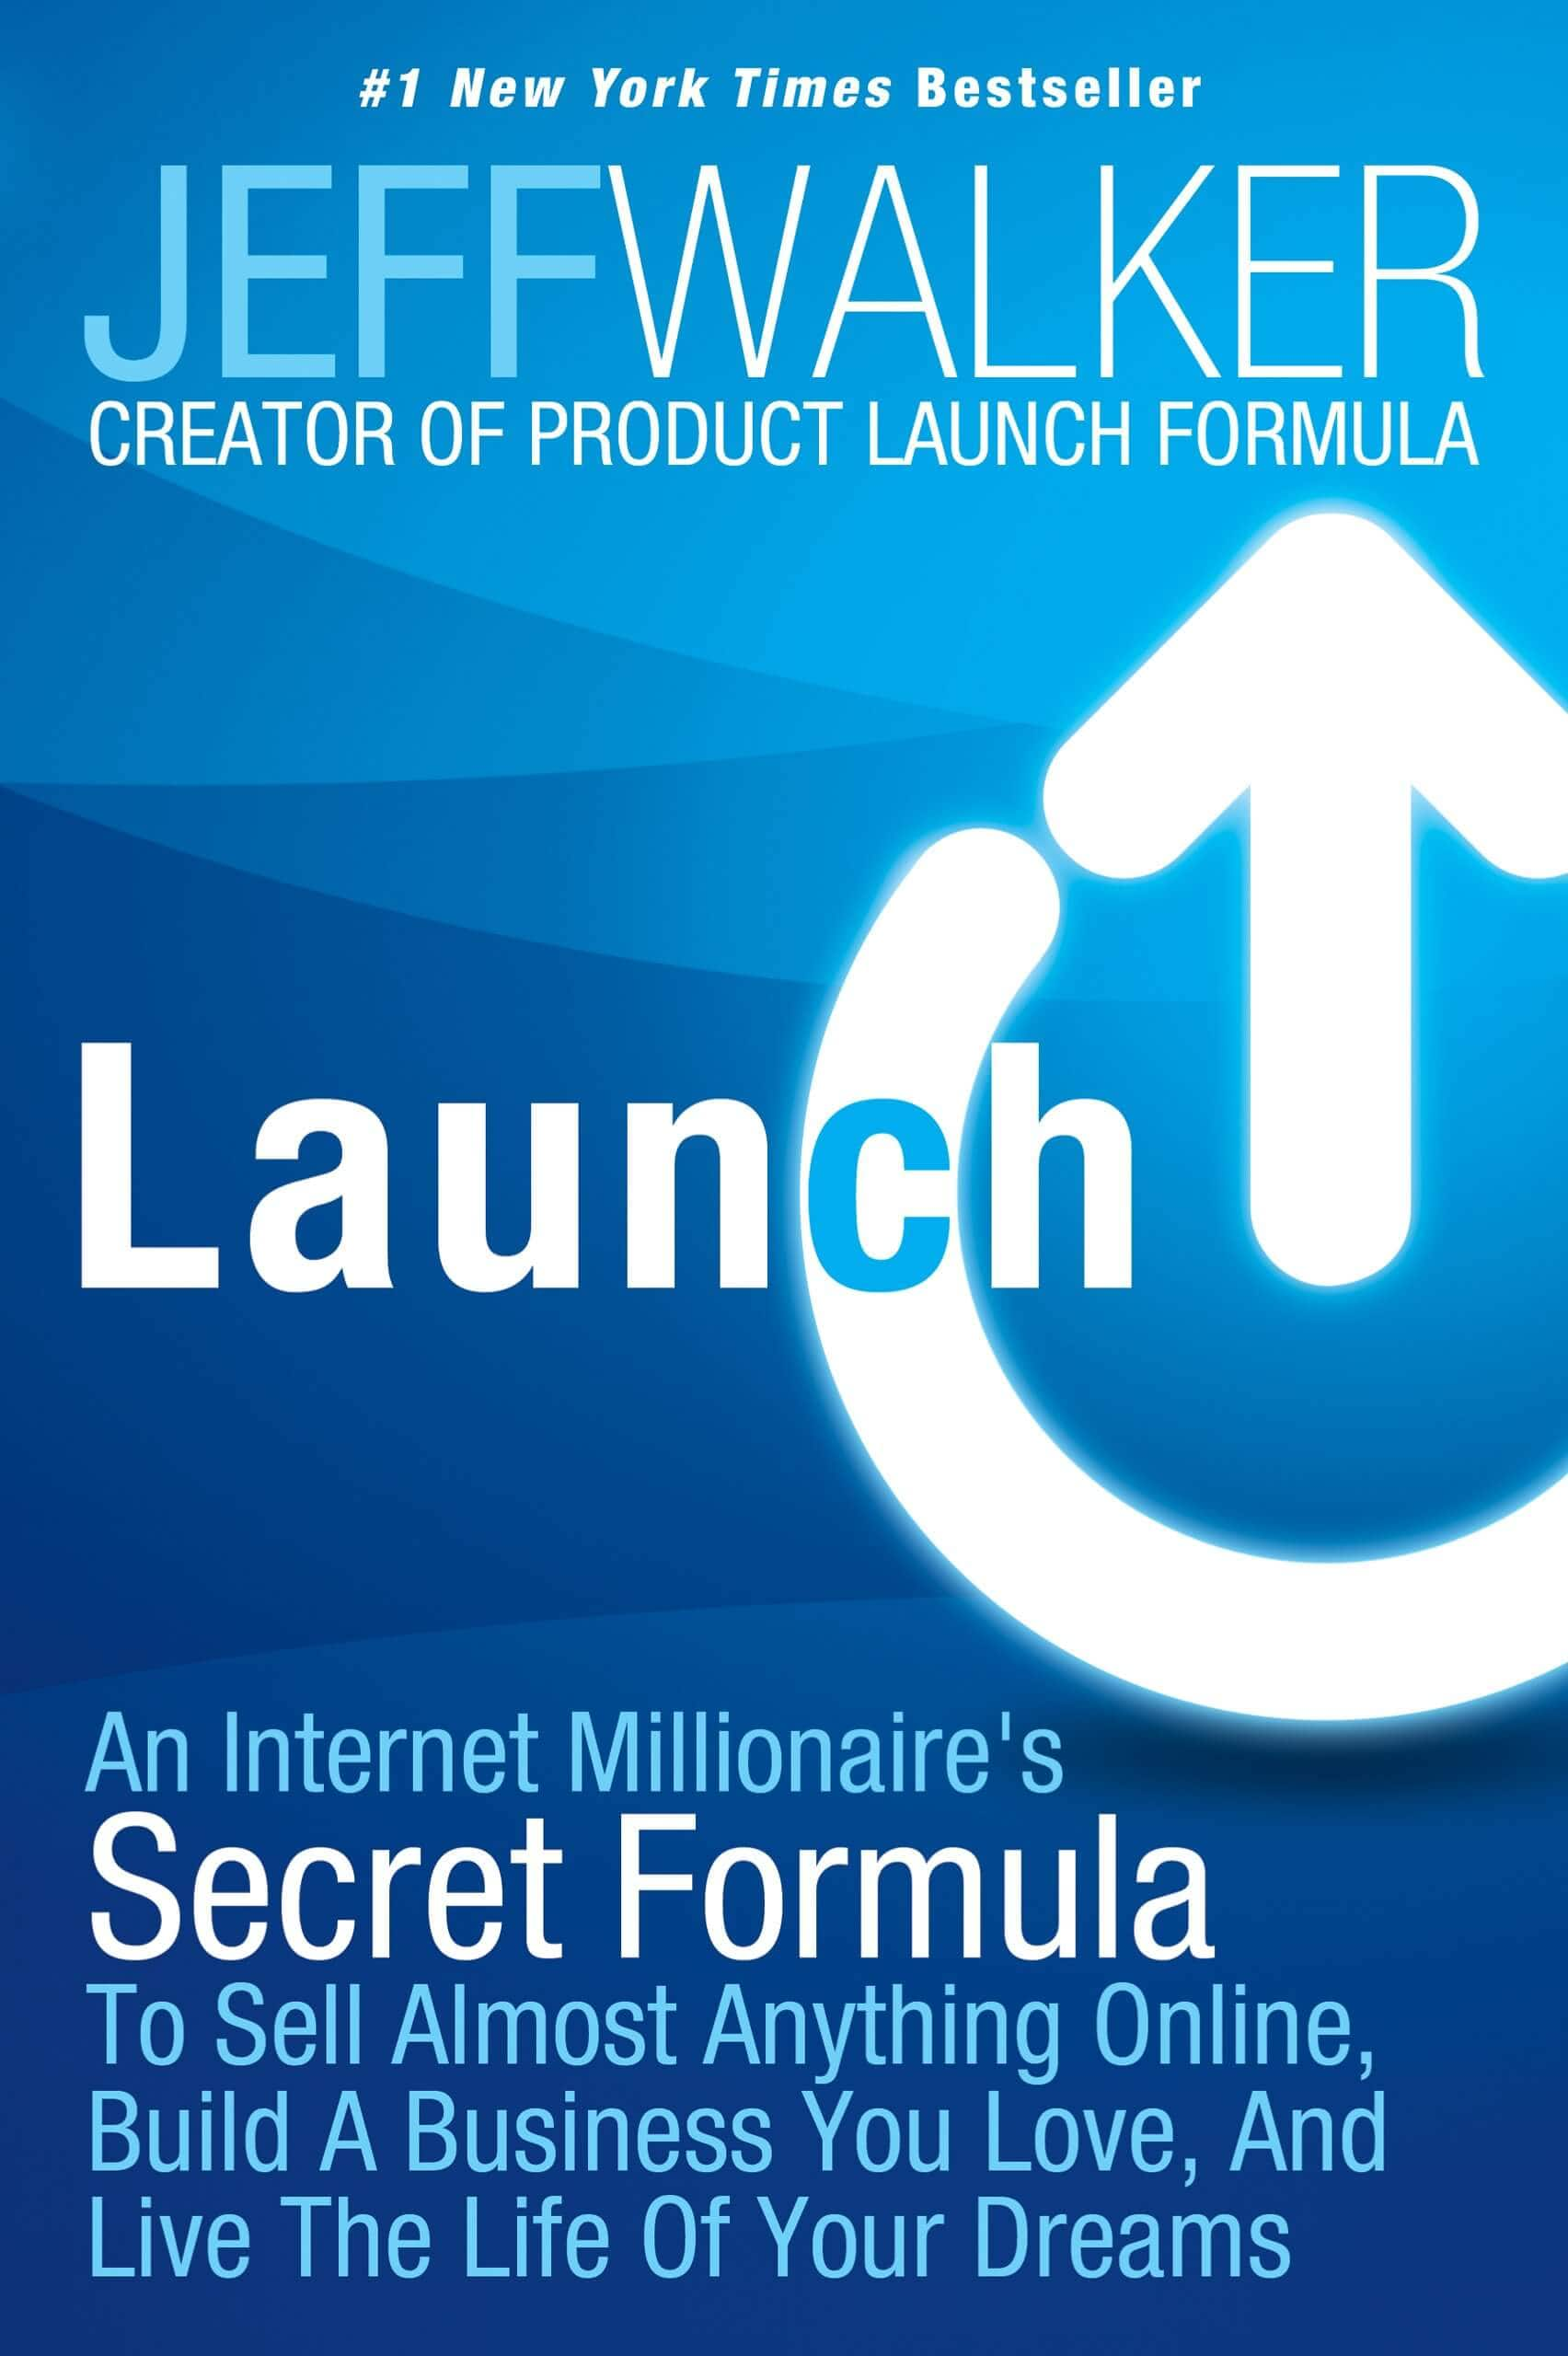 Launch-An-Internet-Millionaires-Secret-Formula-To-Sell-Almost-Anything-Online-Build-A-Business-You-Love-And-Live-The-Life-Of-Your-Dreams